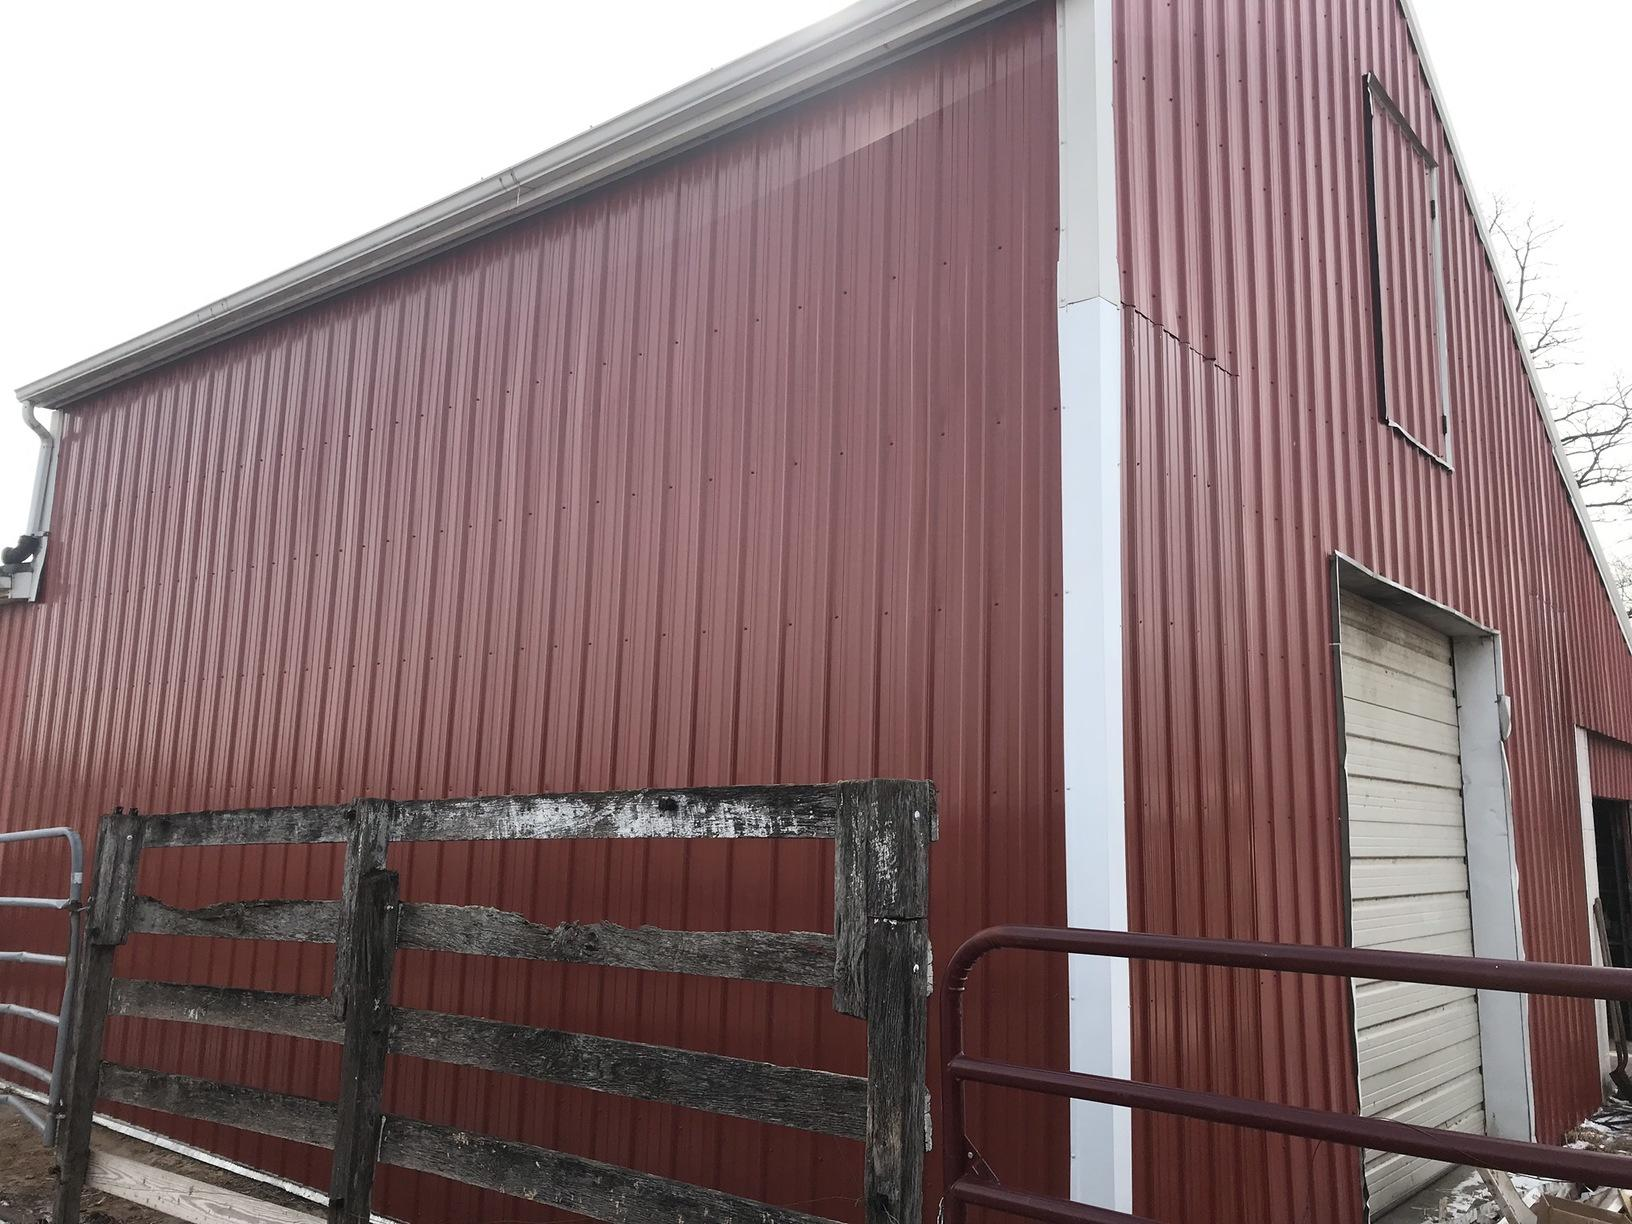 New Look Barn Annville pa - After Photo